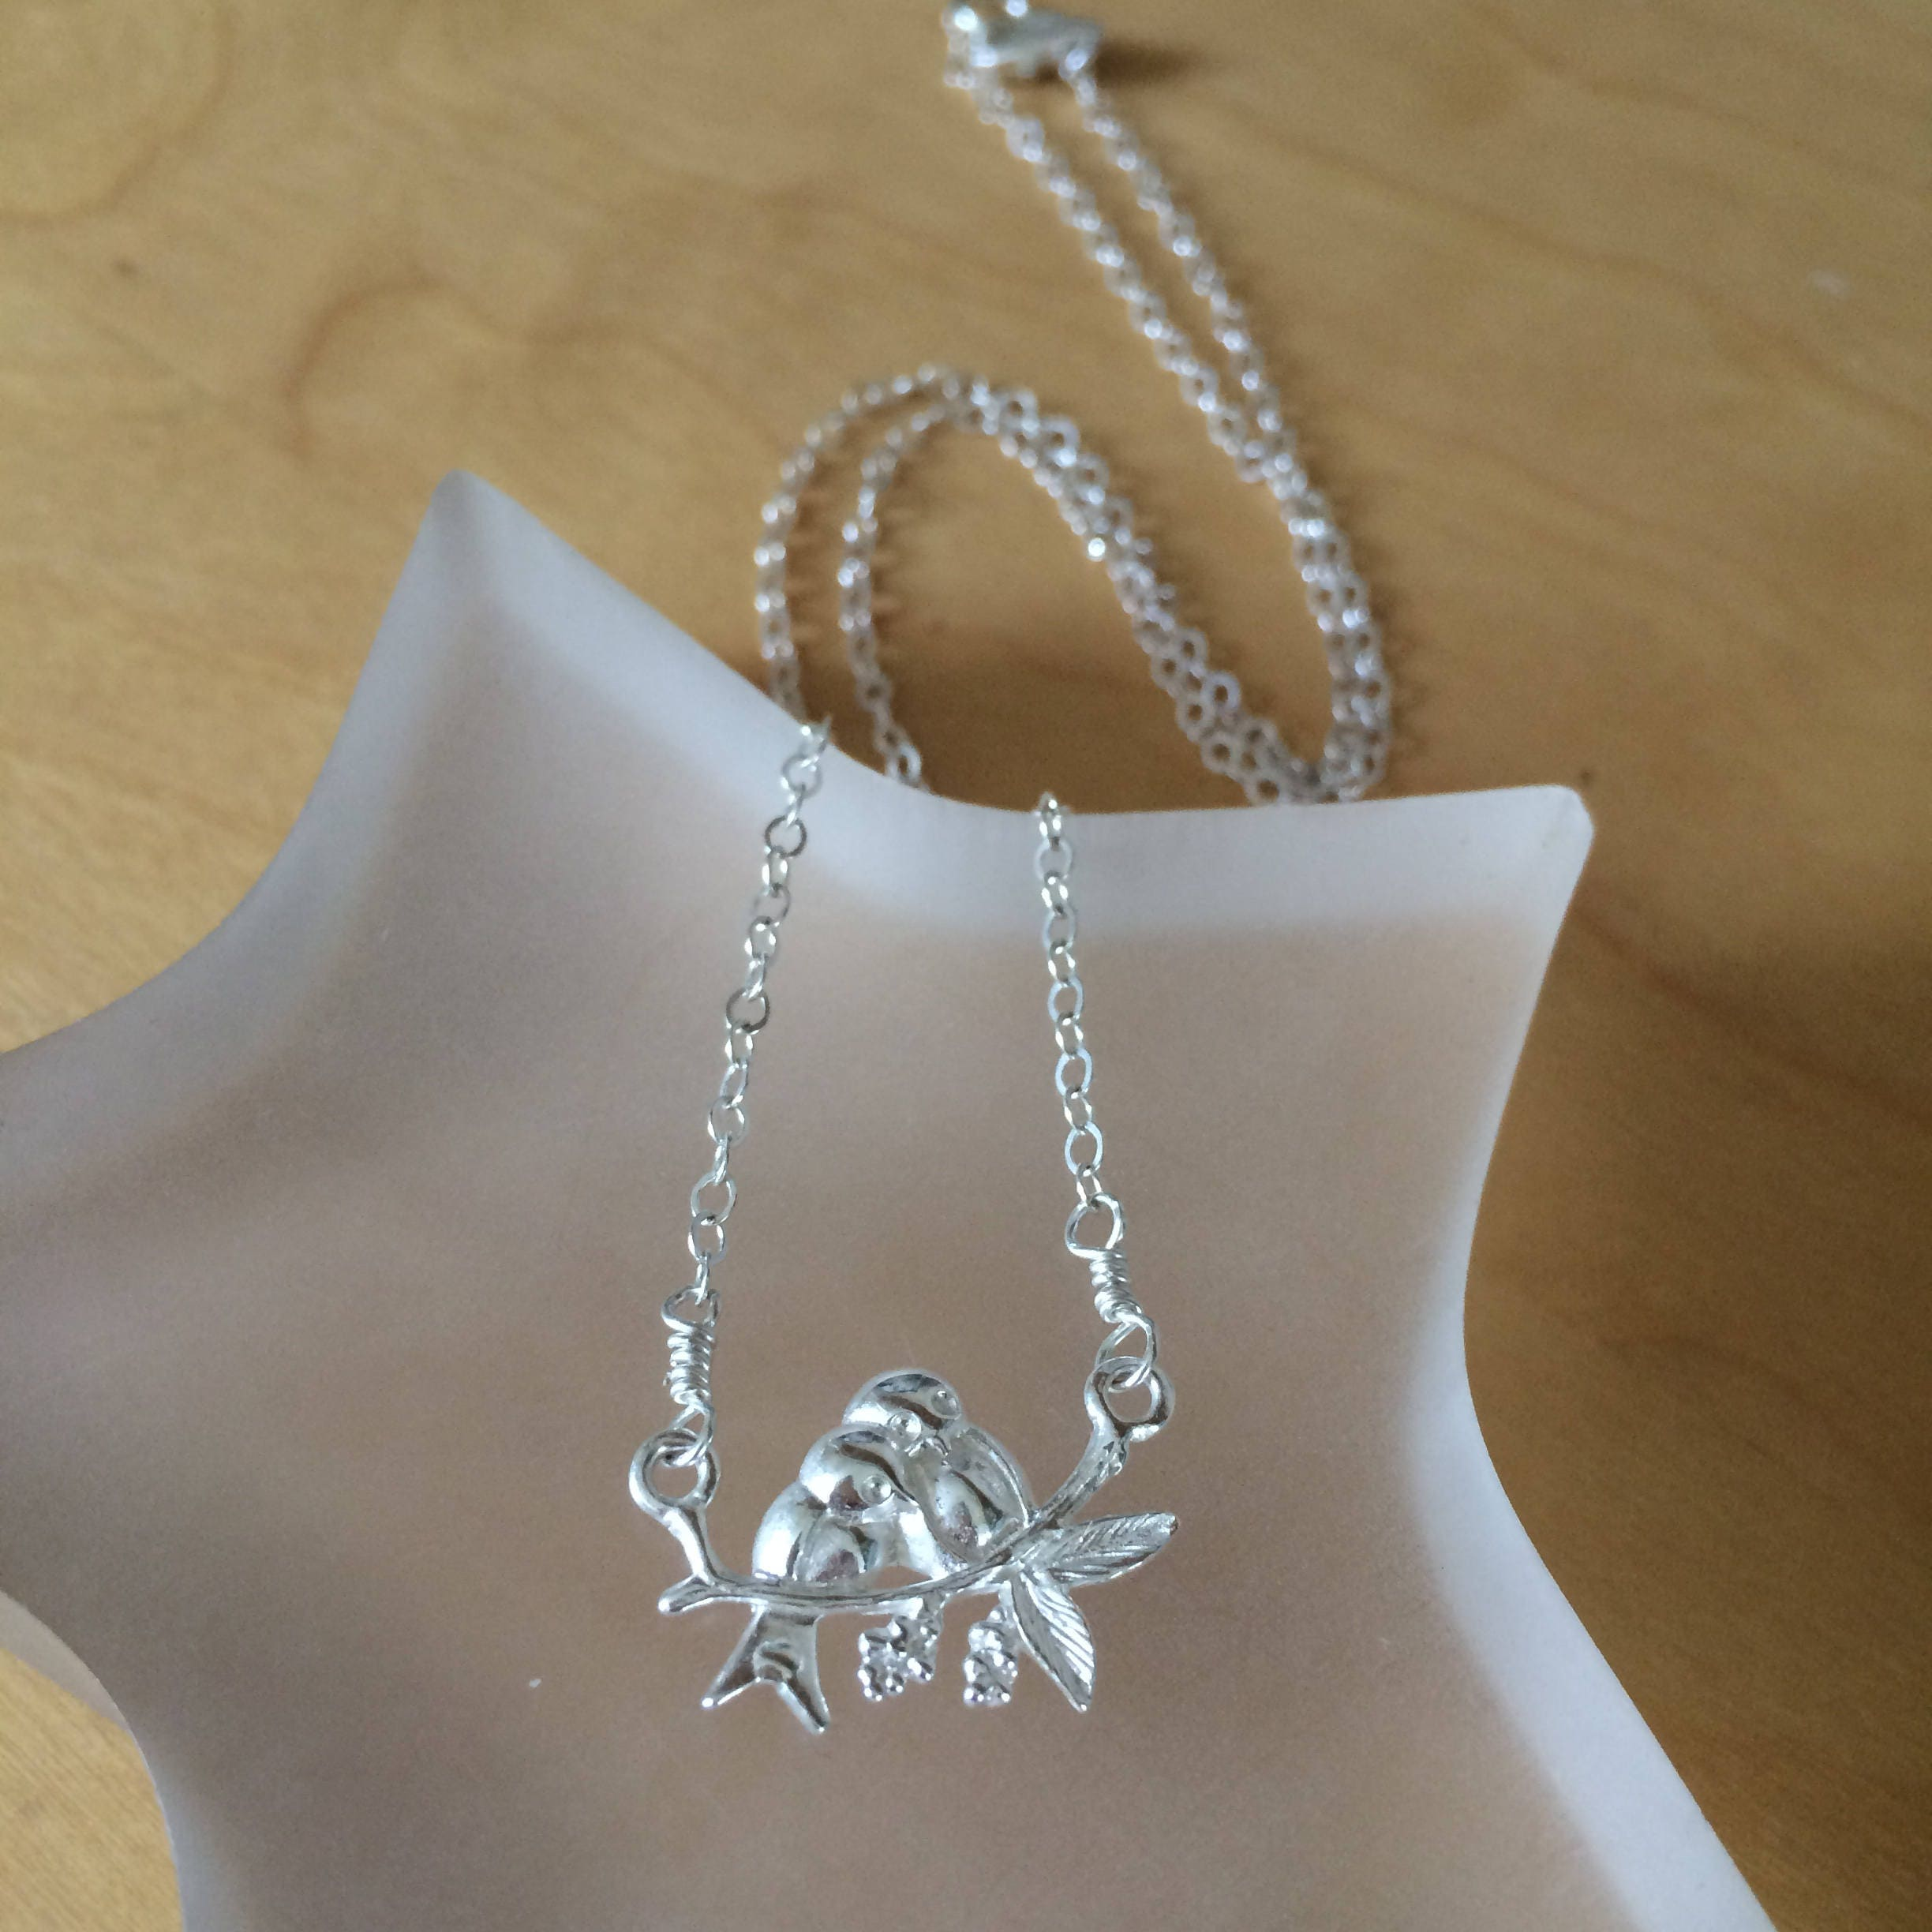 amp grace nesting silver image love necklace bird gold vermeil number jewellery rose co pendant